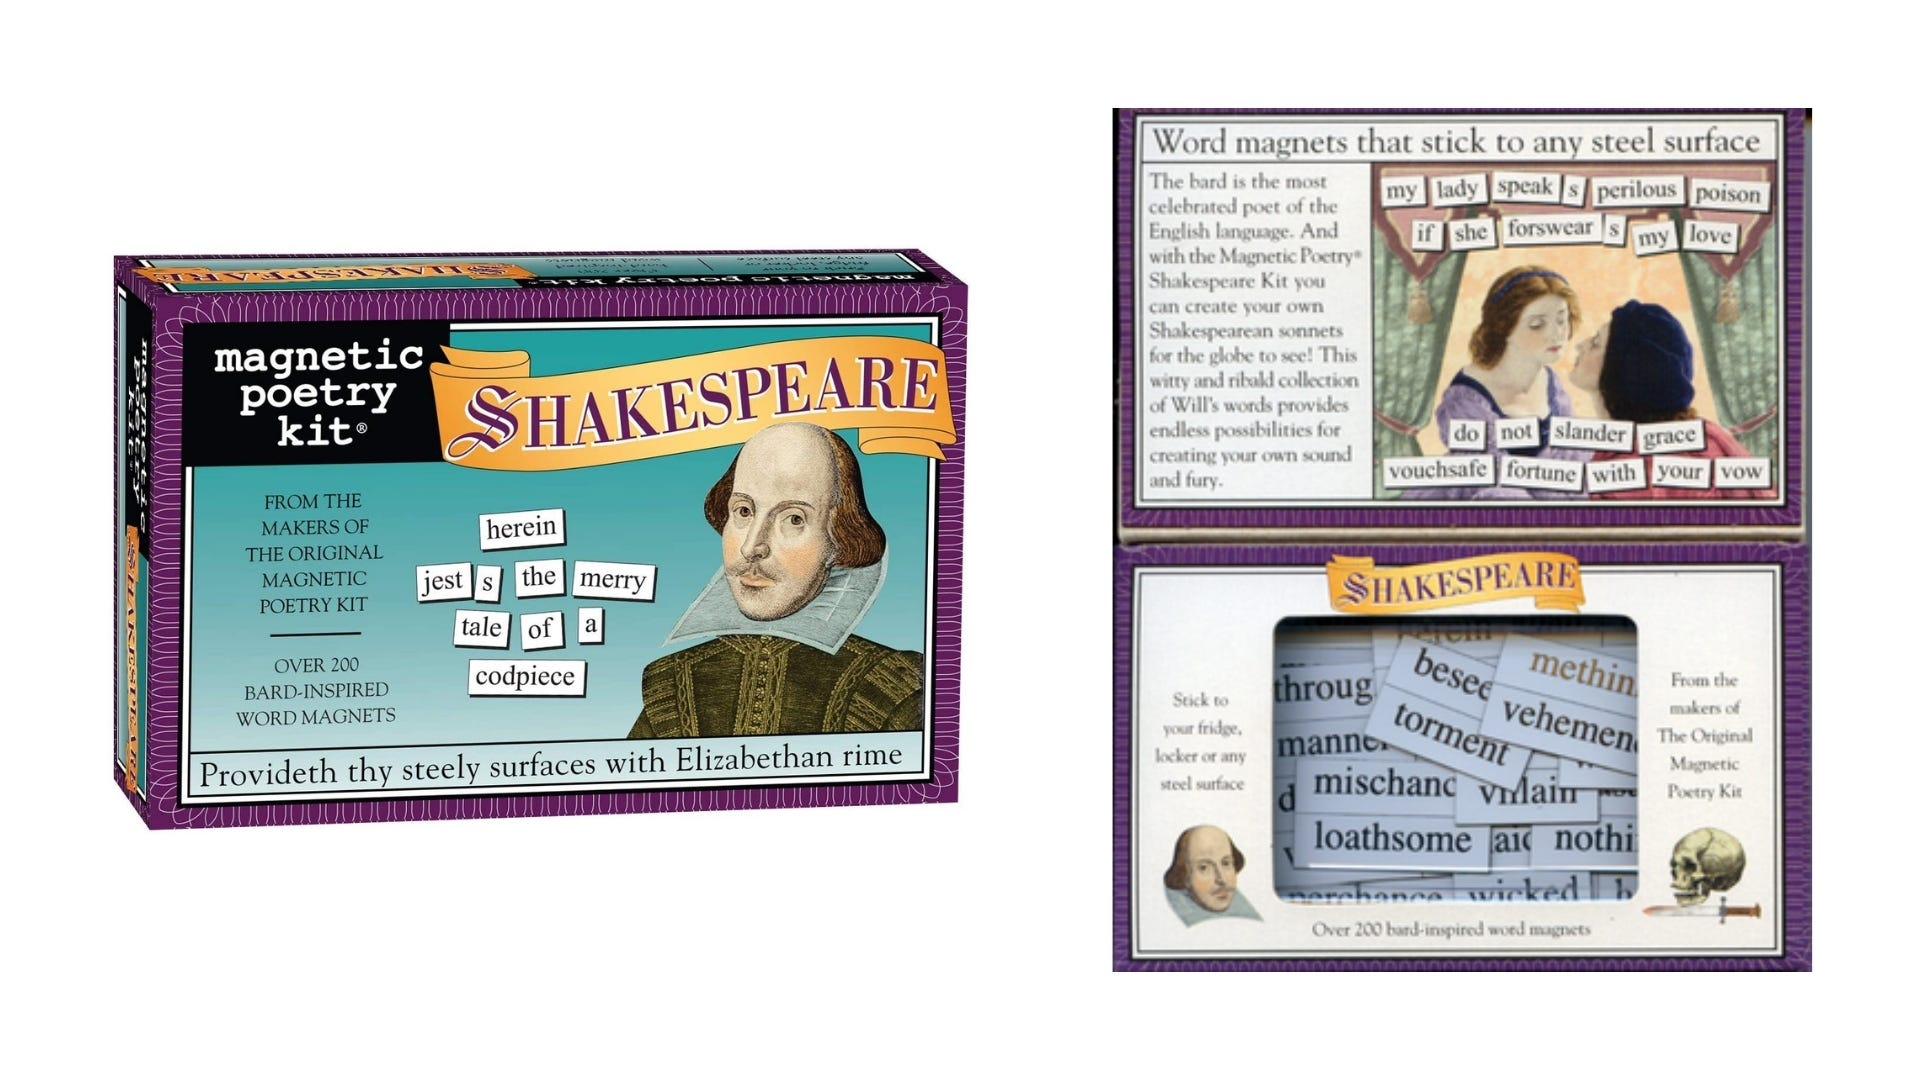 A front and inside view of the Shakespeare Magnetic Poetry kit